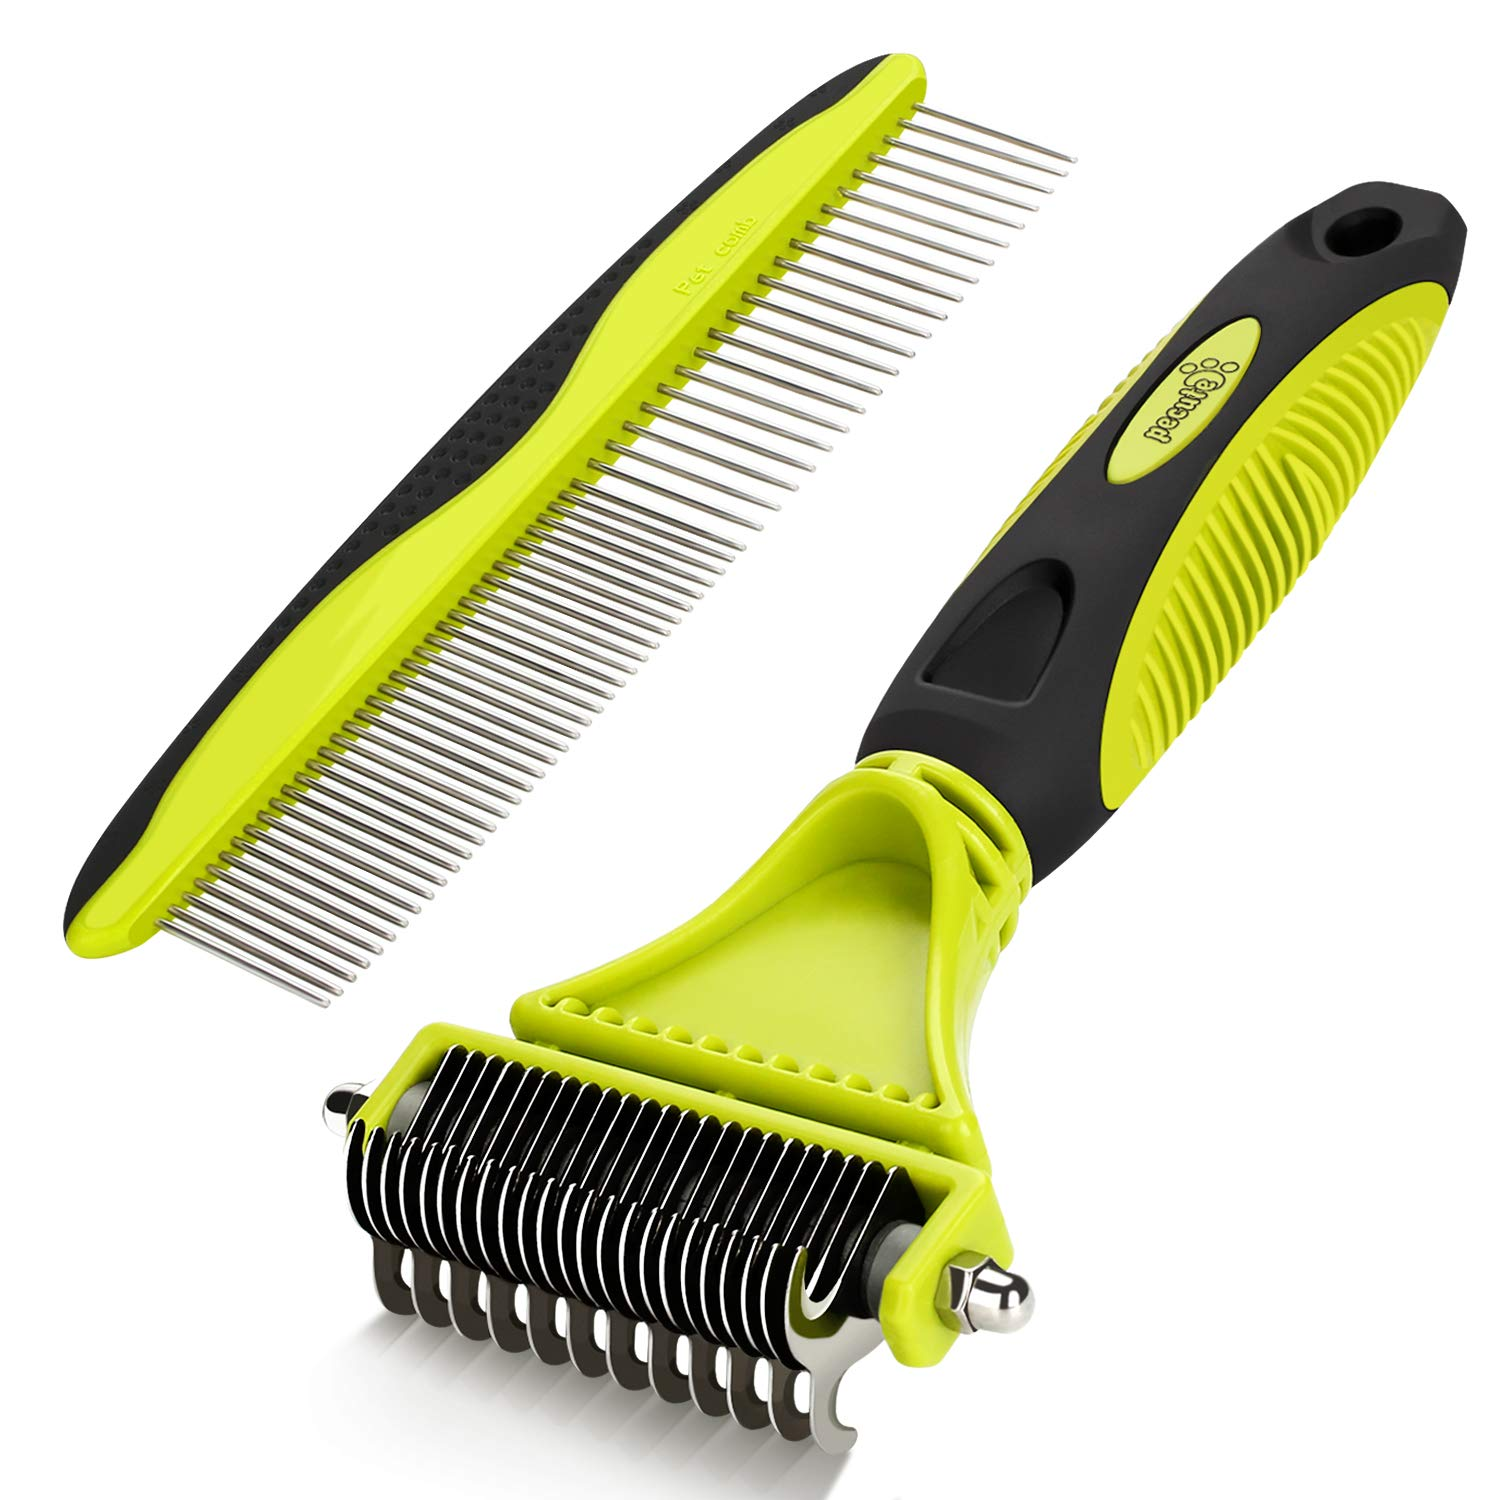 Pecute Grooming Dematting Comb Tool Kit – Double Sided Blade Rake Comb Grooming Comb – Removes Loose Undercoat, Knots, Mats and Tangled Hair